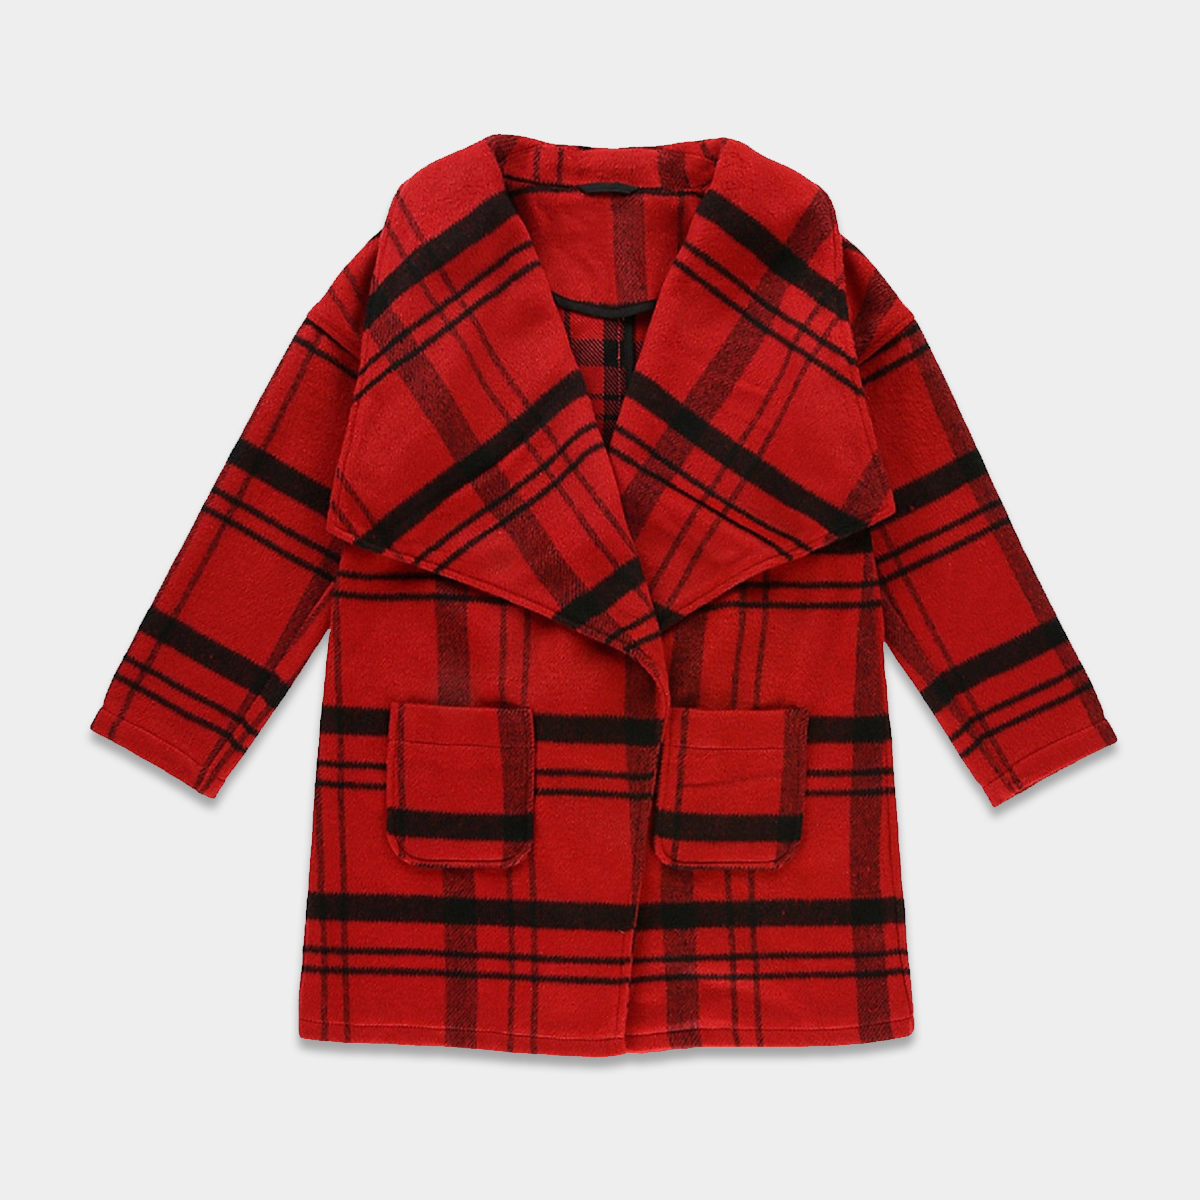 c1738435526a M S Kids Girls Red Checked Trench Winter Coat Jacket Warm Thick Wool ...